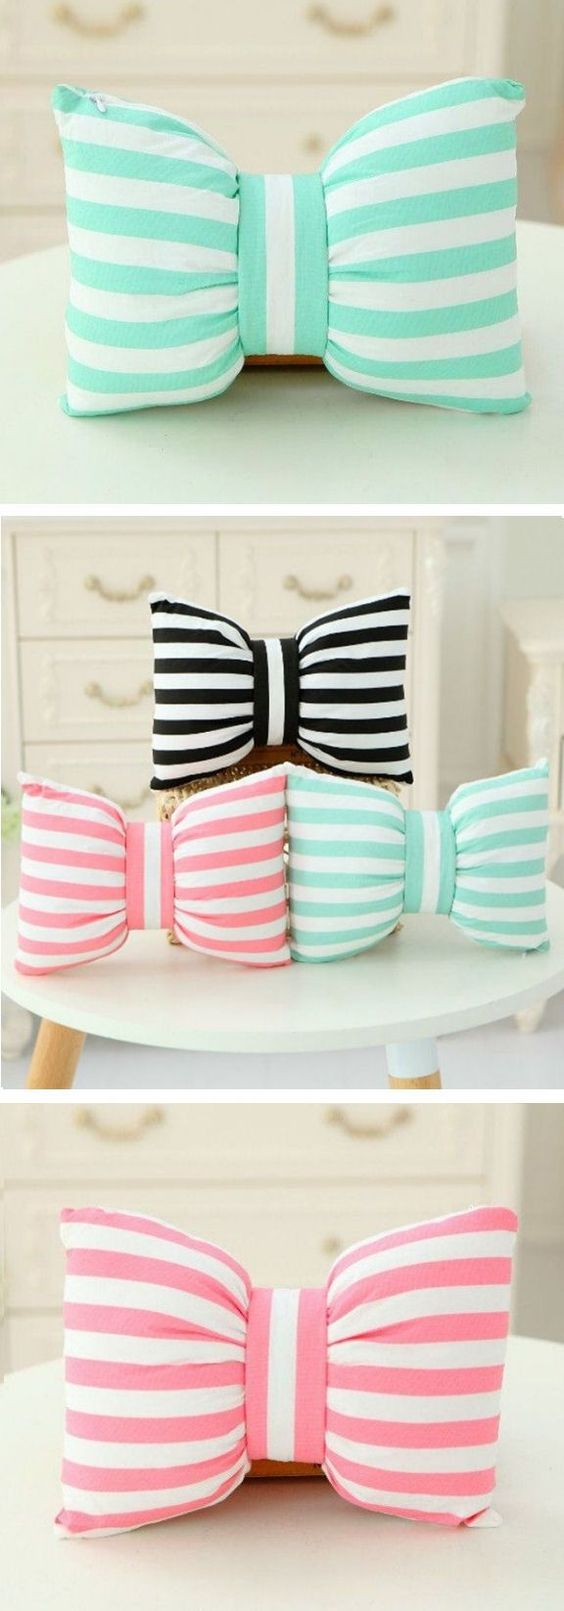 Cute Pillow Crafts : cUte Stripe Bowknot Pillows ? by wteresa Clever crafts Pinterest Stripes, Posts and Pillows